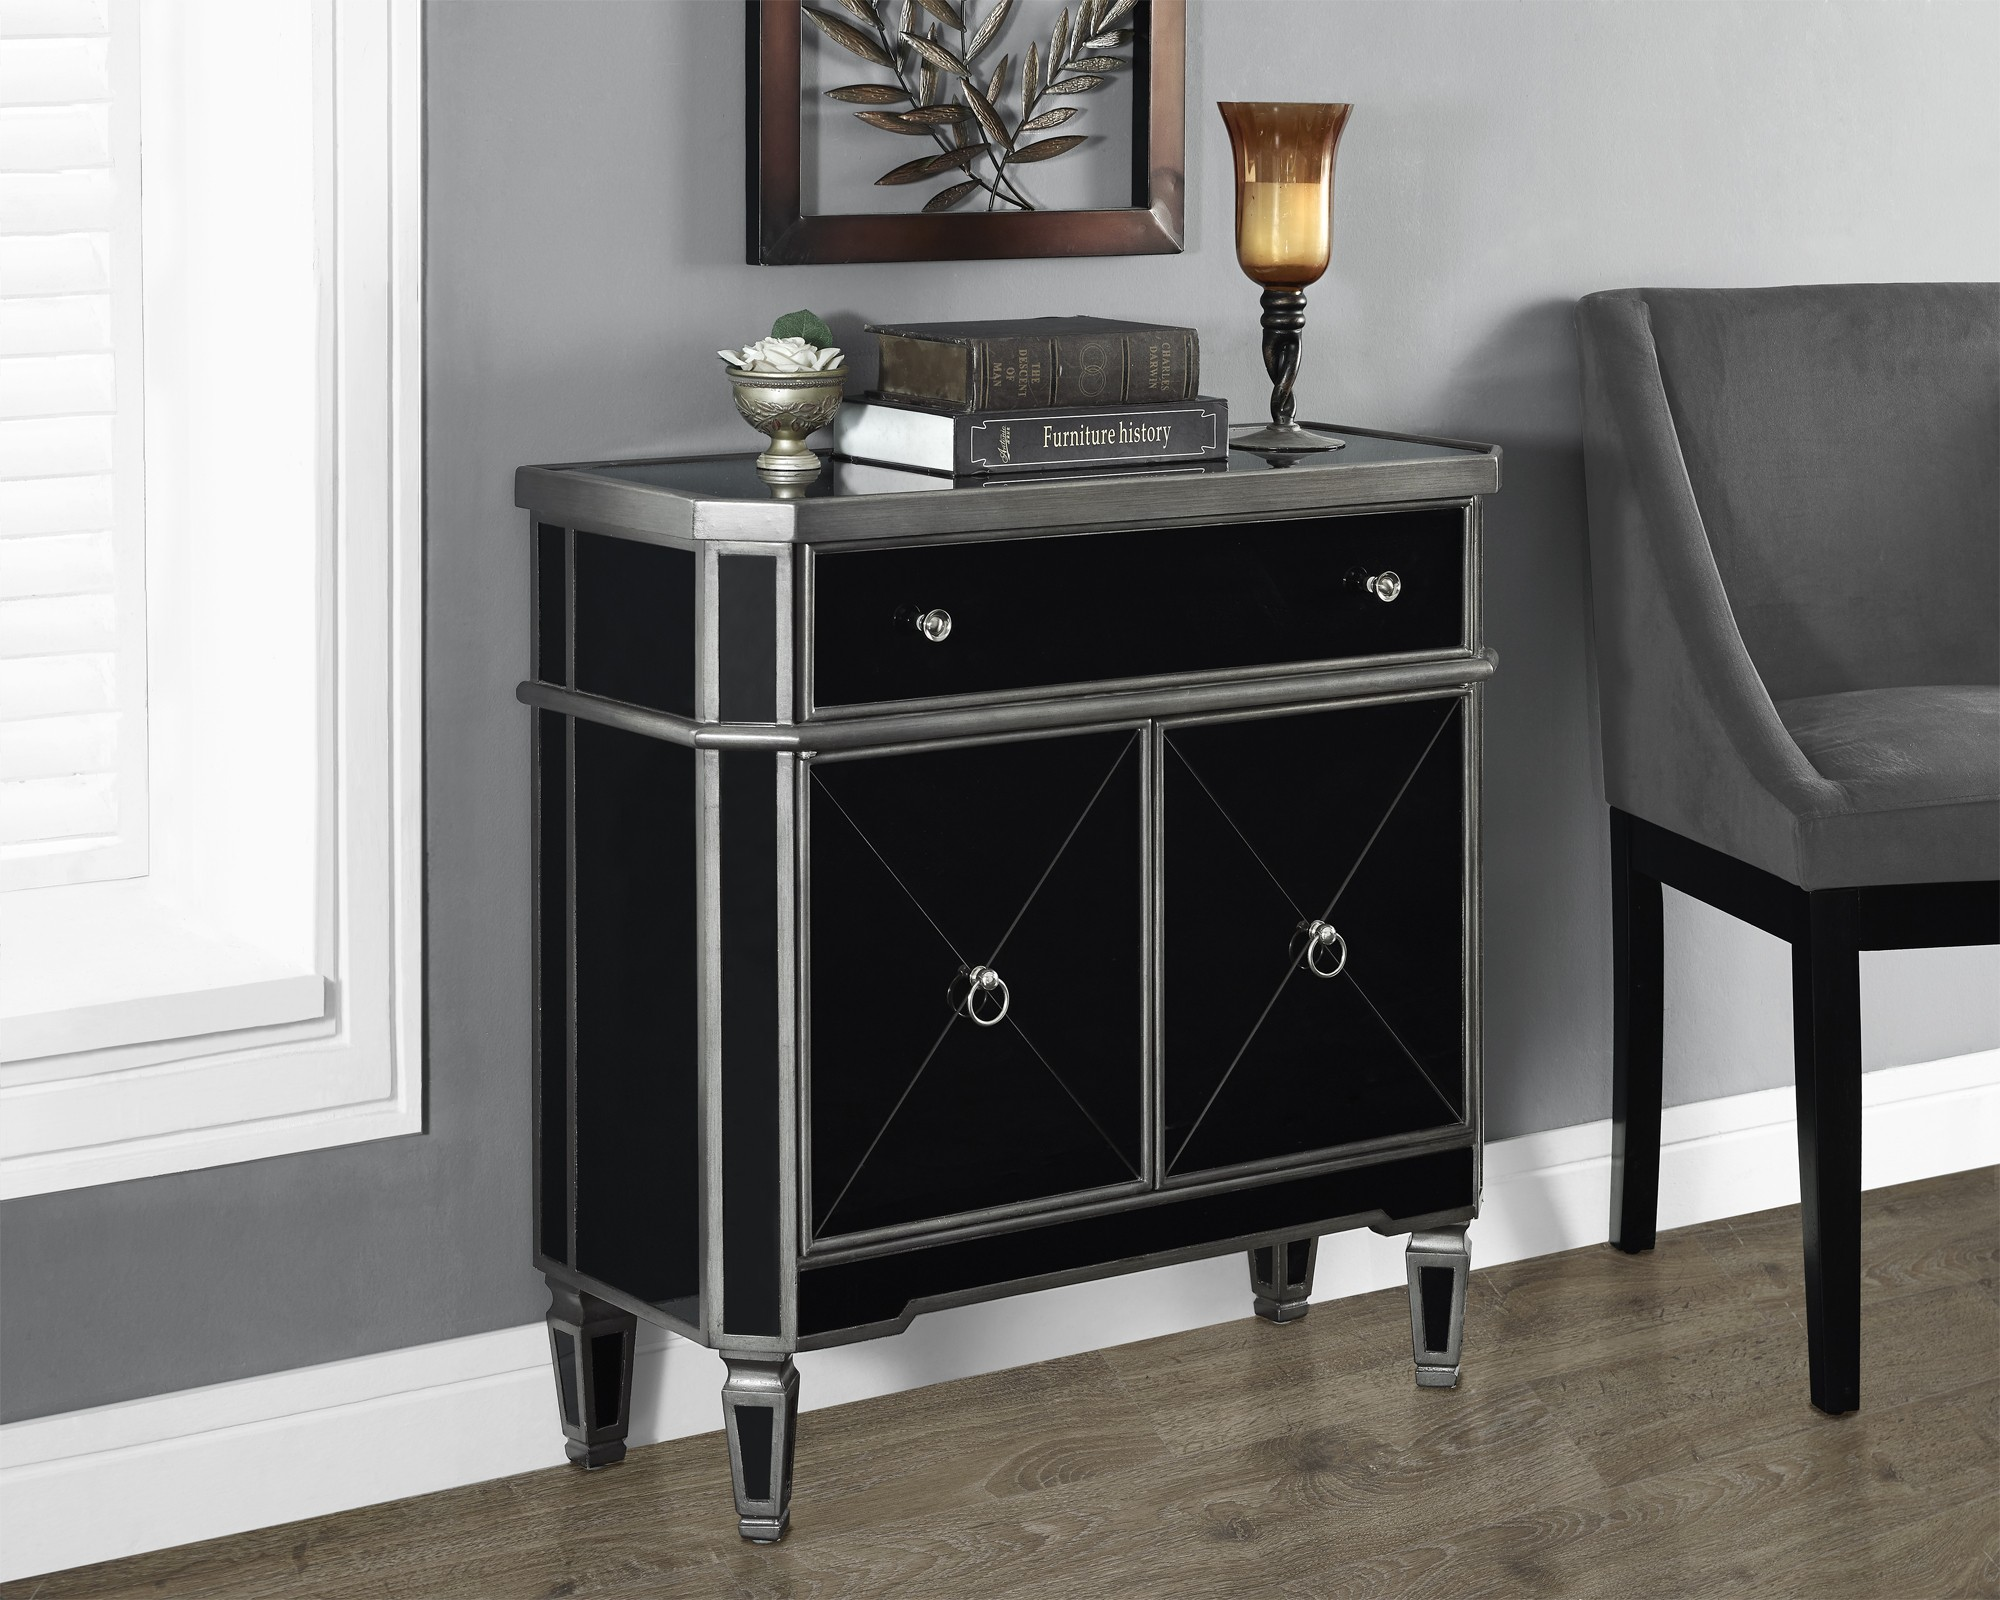 black accent table with drawer home design ideas nightstand round bedside charcoal grey mirrored wooden floor and wall for decoration gold skinny end tables pedestal coffee furn